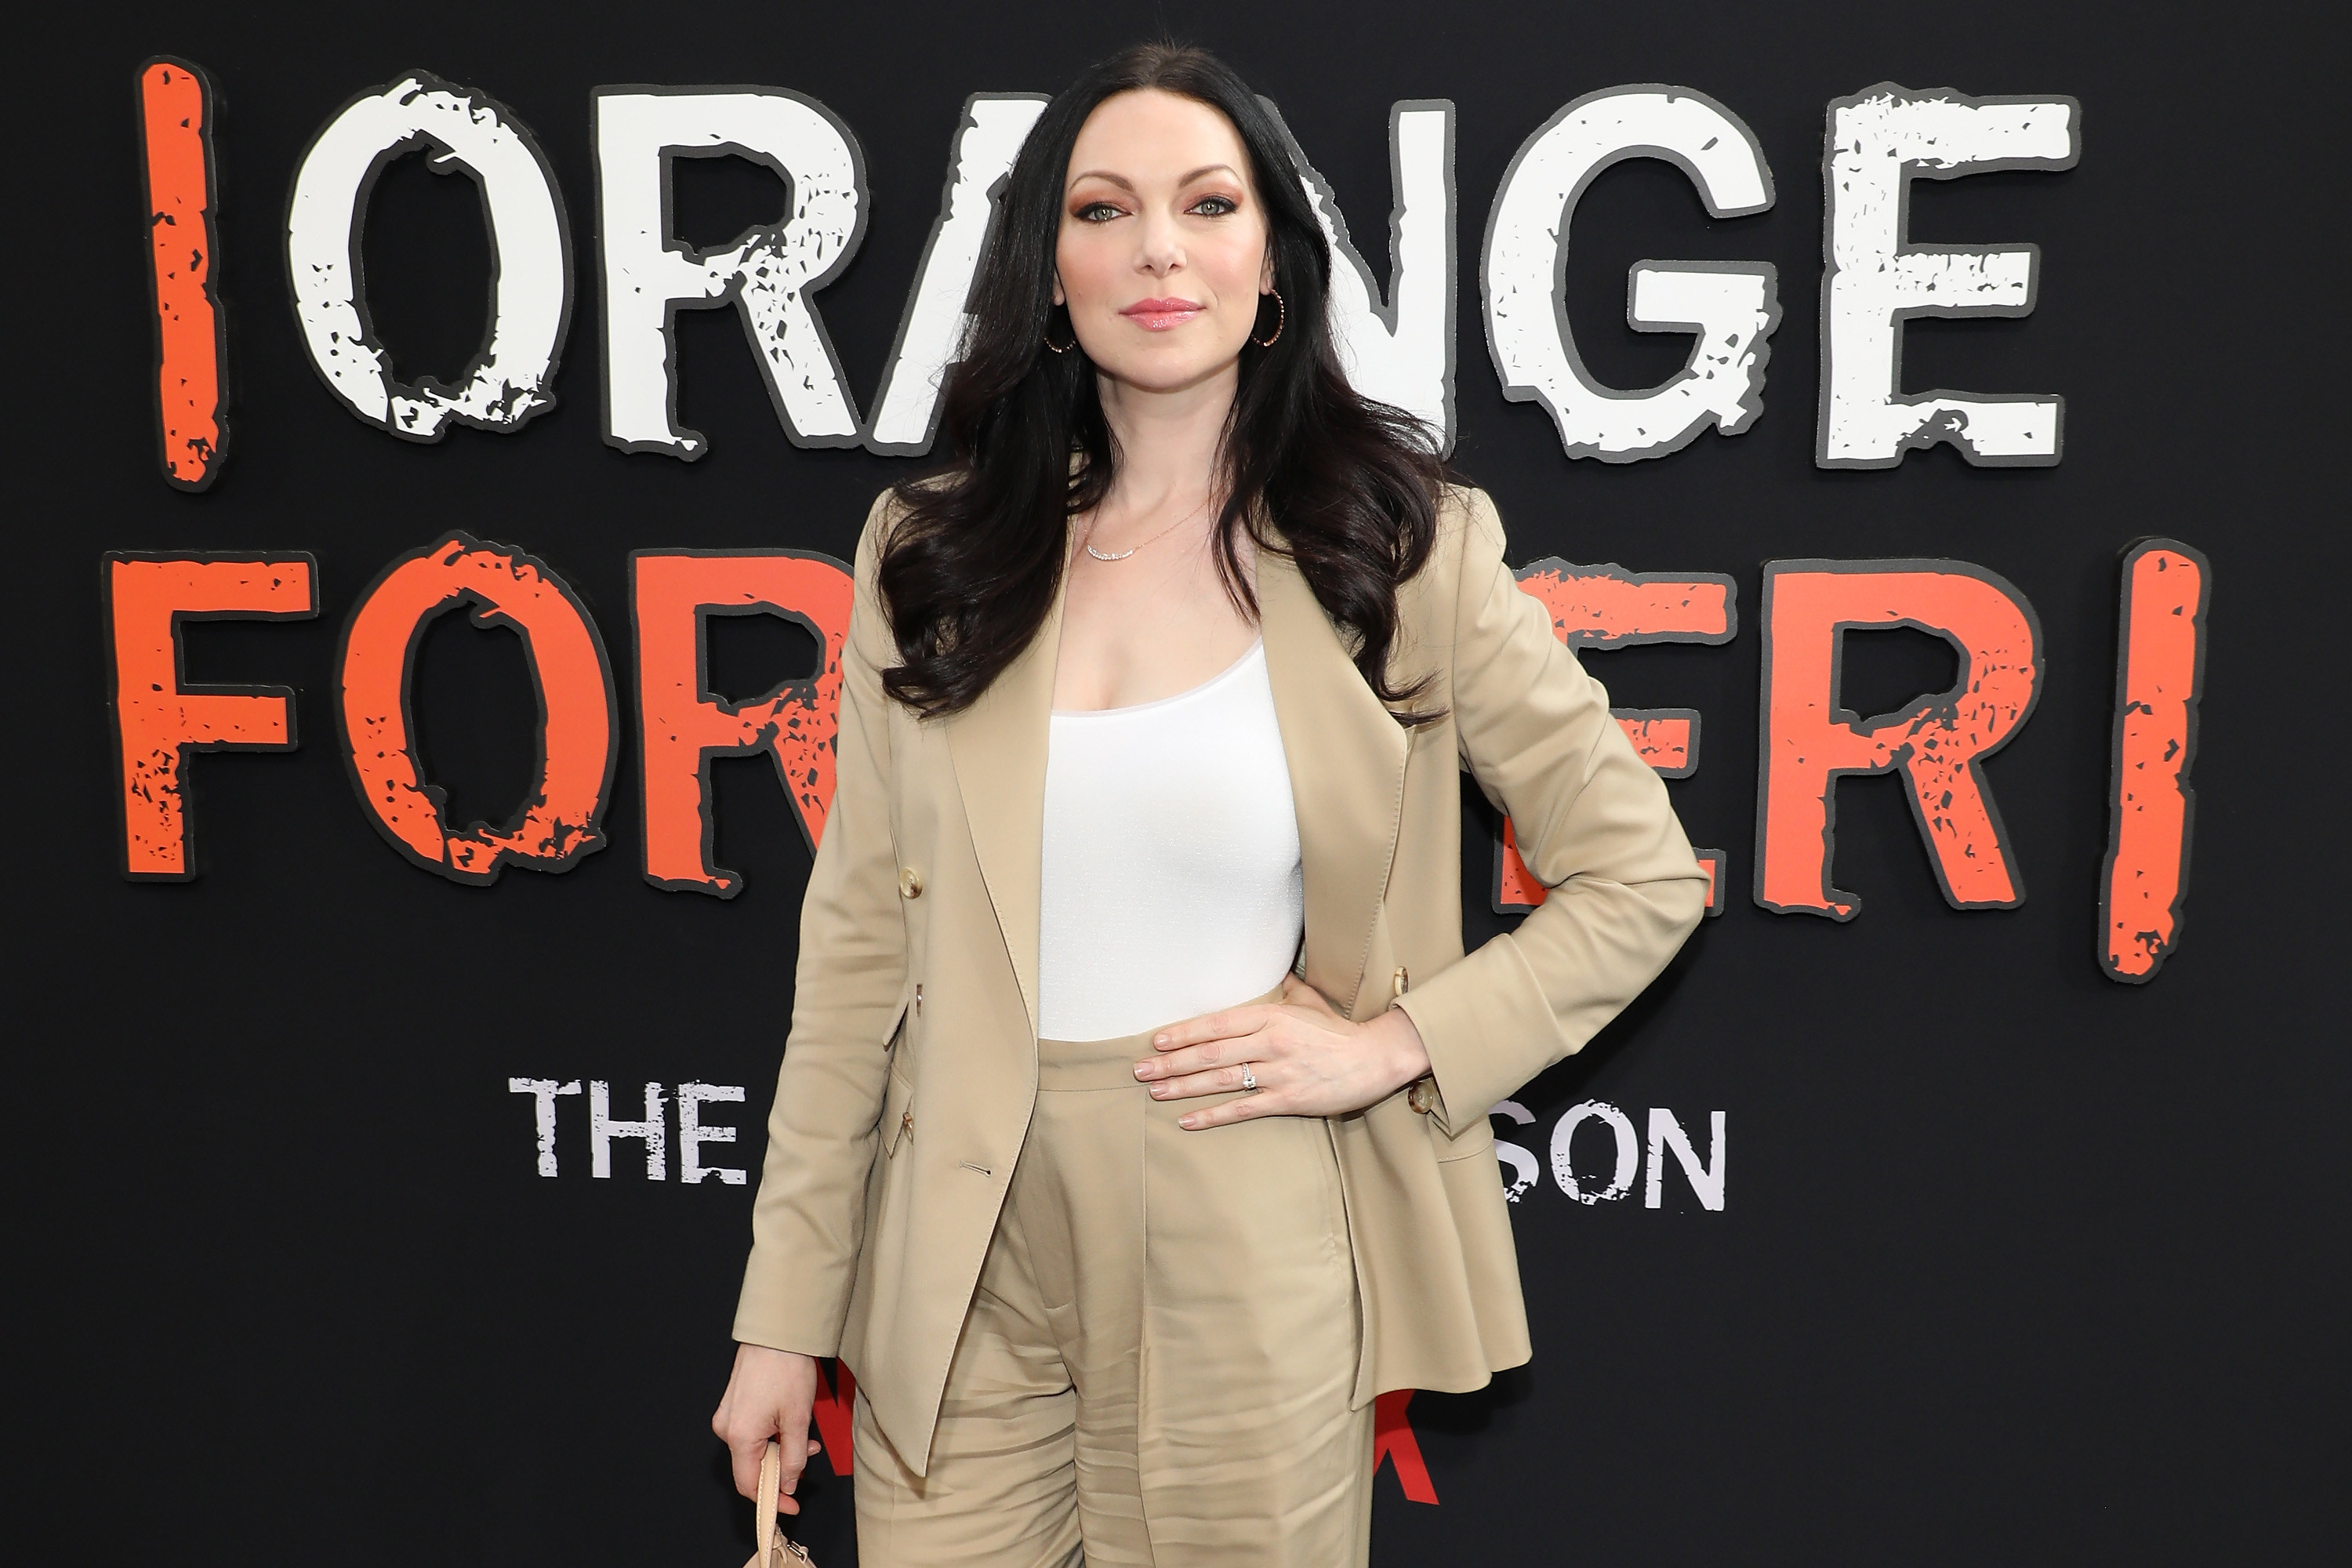 Laura at a Orange Is the New Black event with her hand on her hip